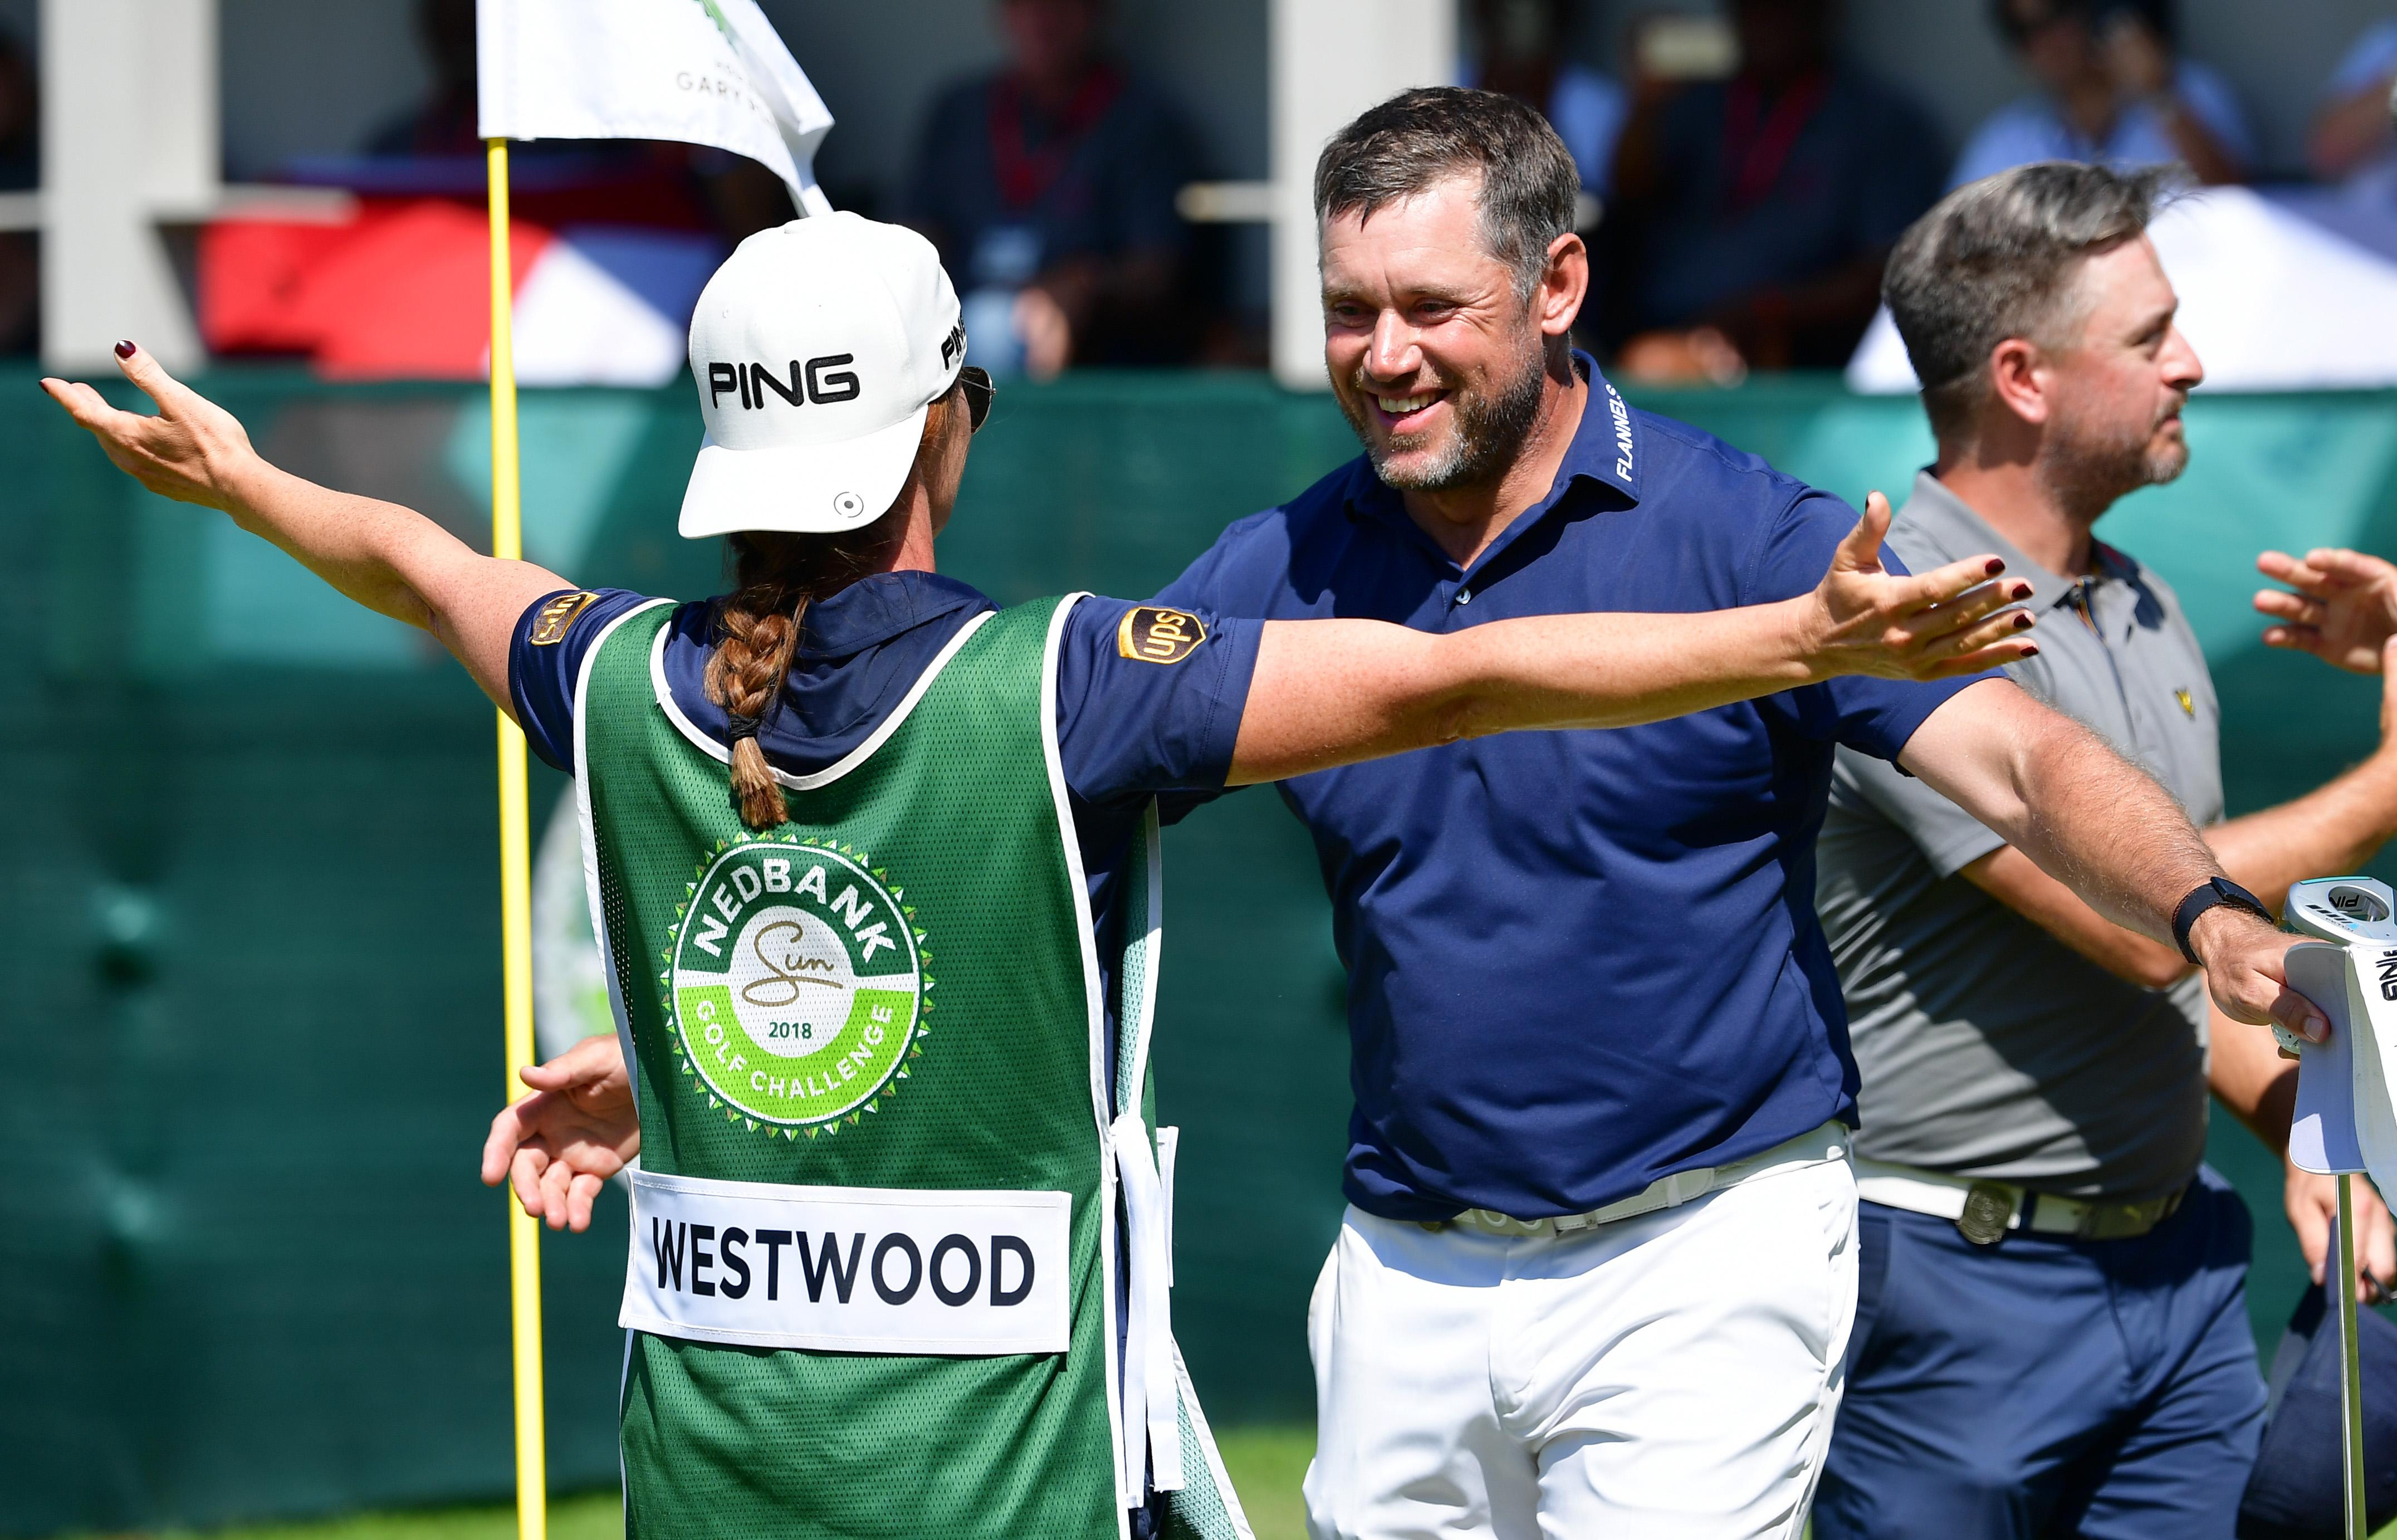 Lee Westwood put in a stunning final round of 64 to win in South Africa